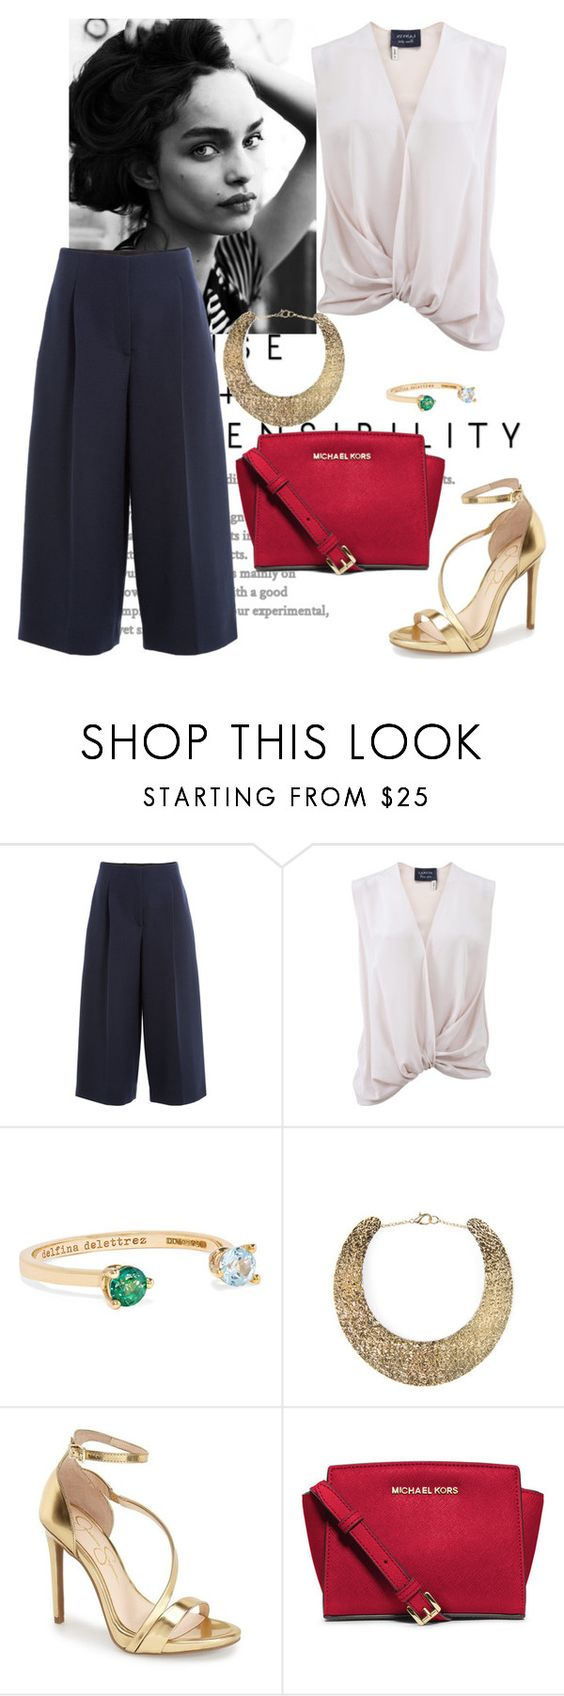 """Sans titre #932"" by alika14 ❤ liked on Polyvore featuring Valentino, Lanvin, Delfina Delettrez, MANGO, Jessica Simpson and MICHAEL Michael Kors"